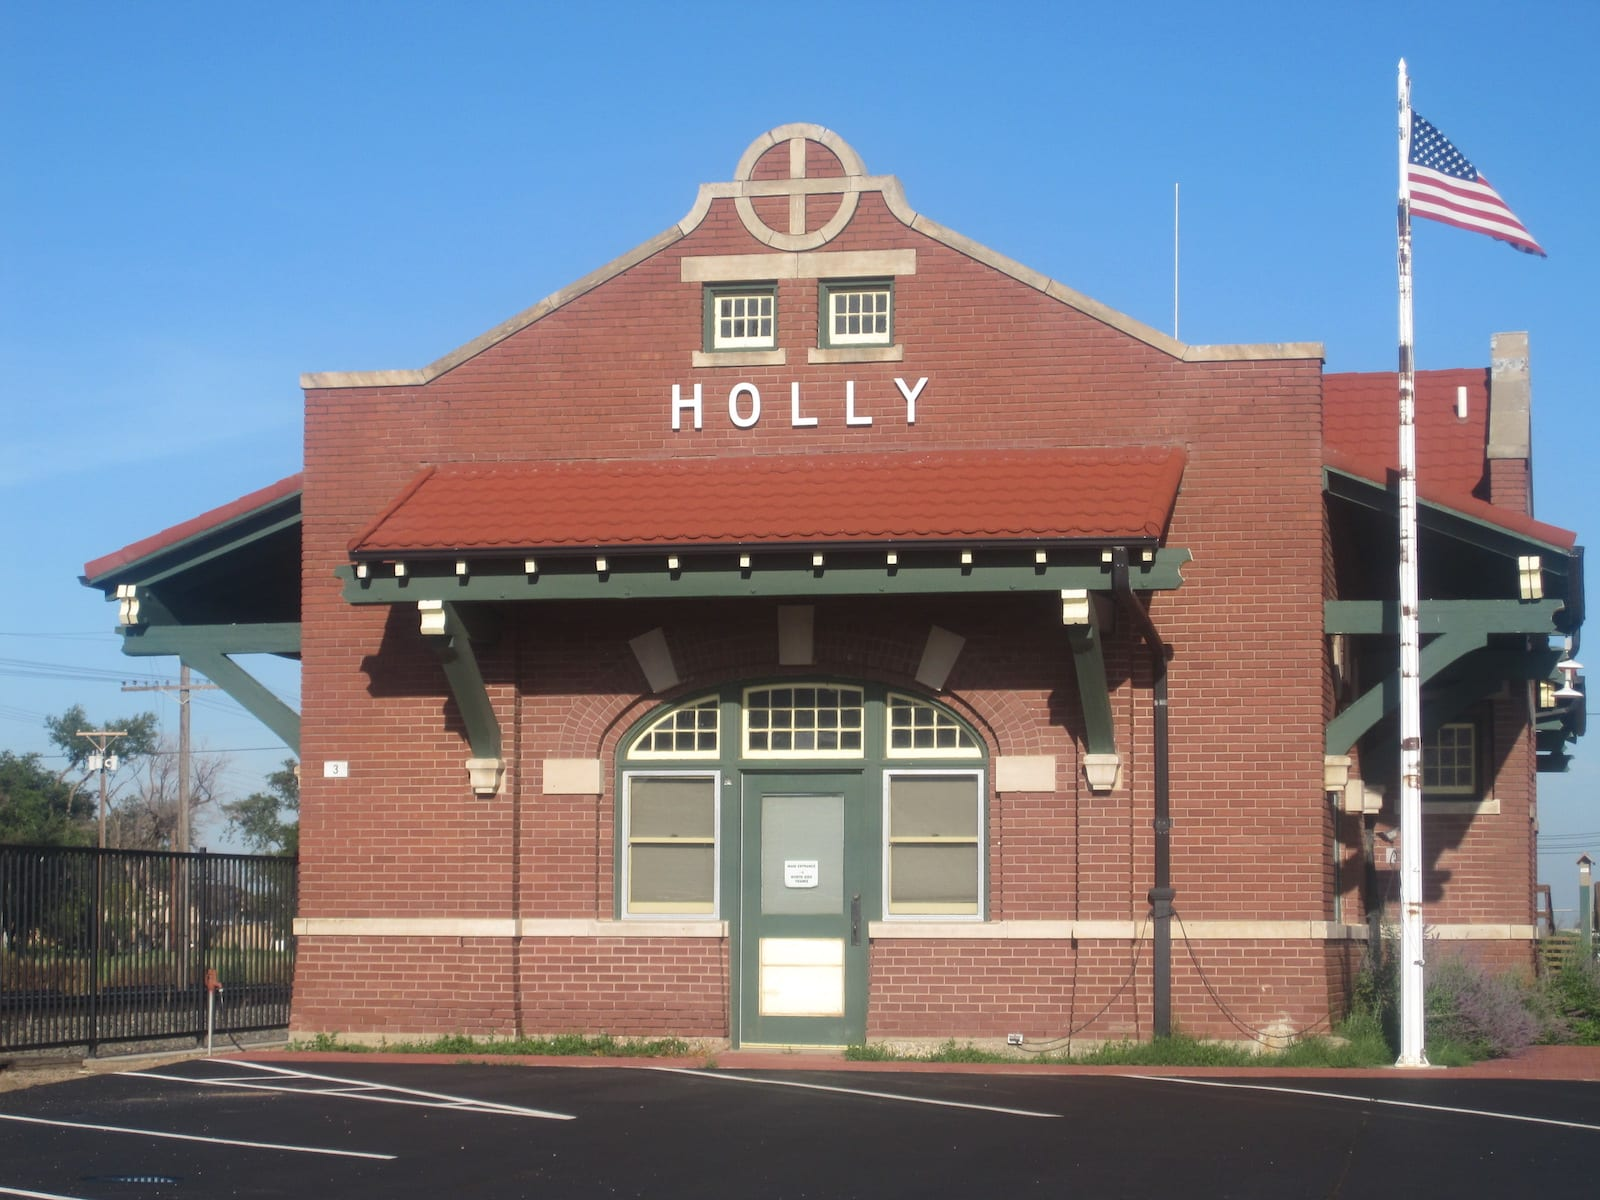 Holly CO Town Hall in Former Santa Fe Railroad Station